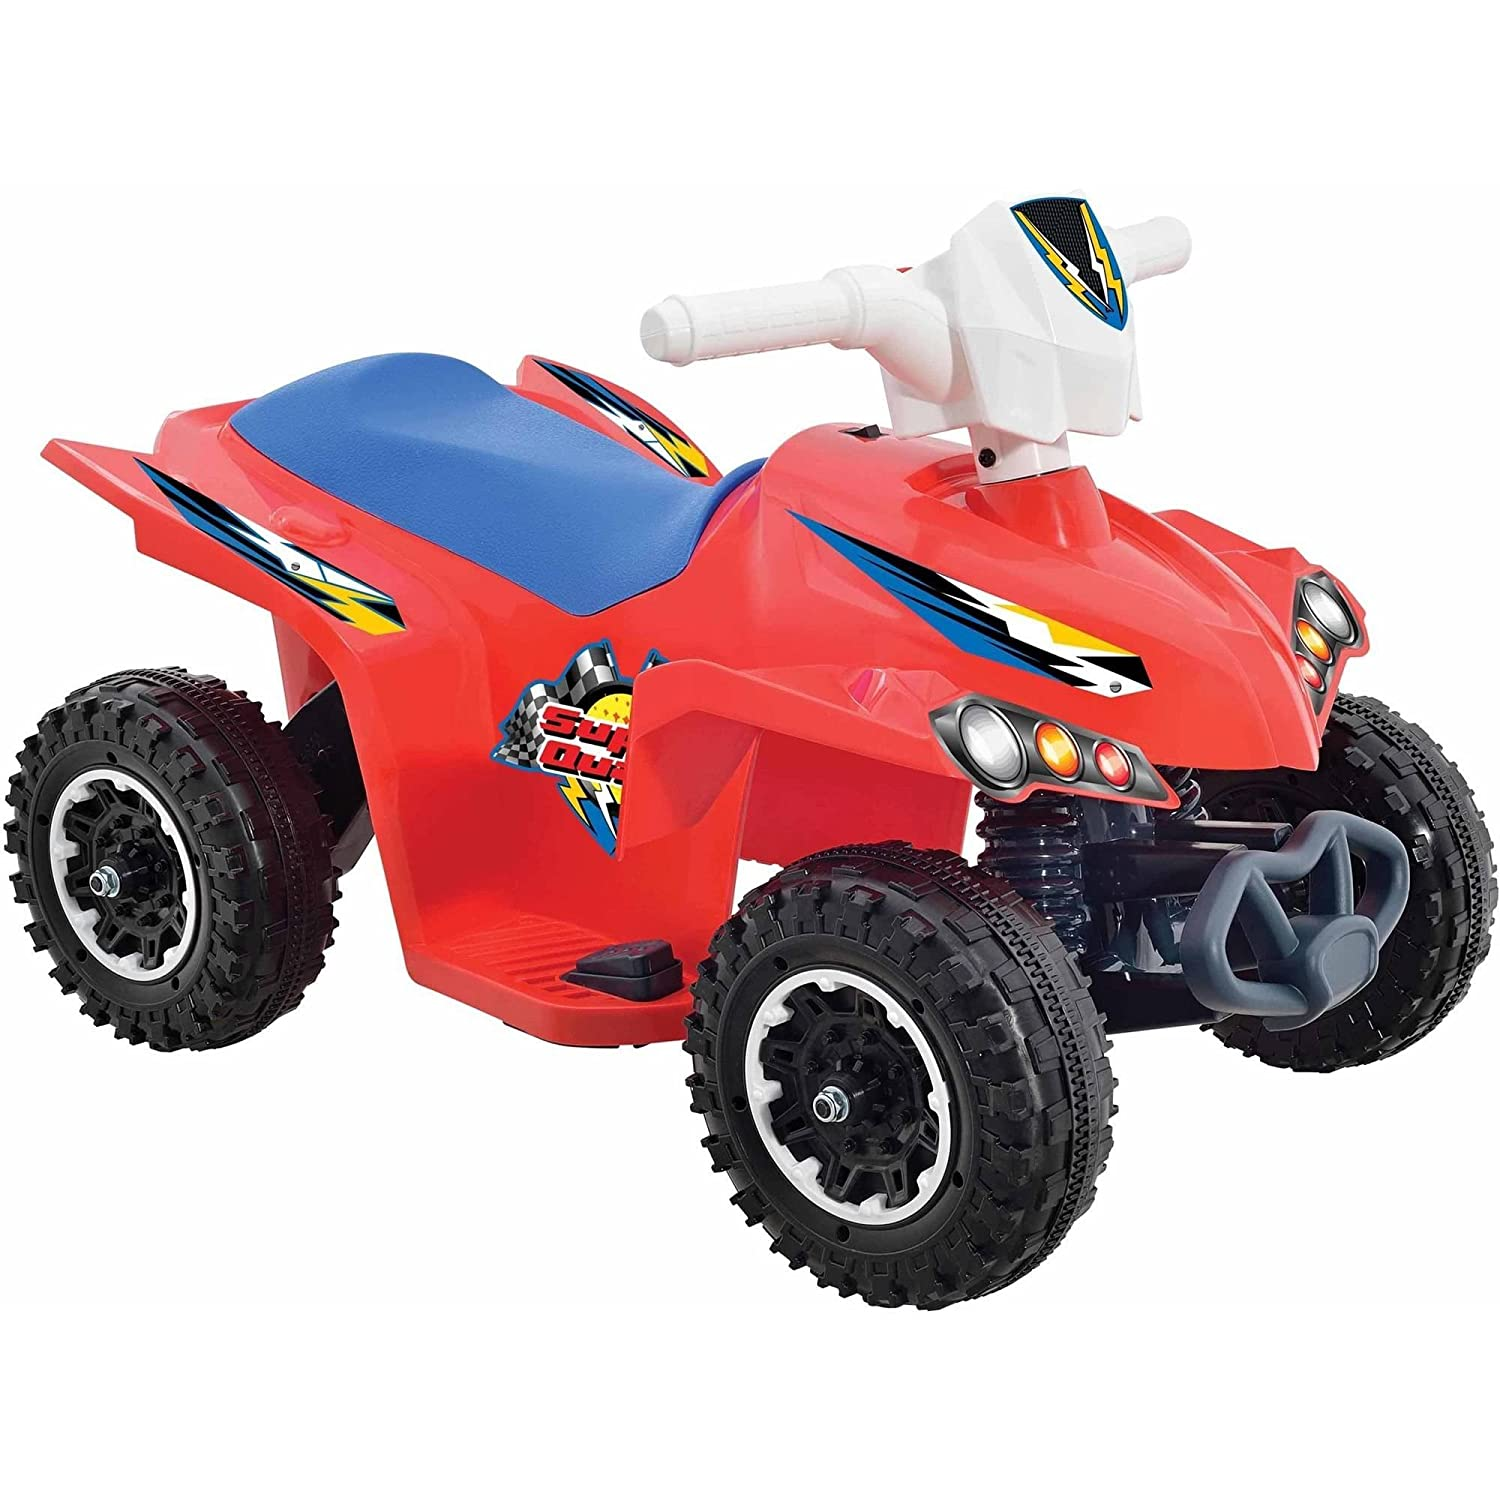 Motorized Toys For Boys : Volt battery powered wheels kids electric ride on quad